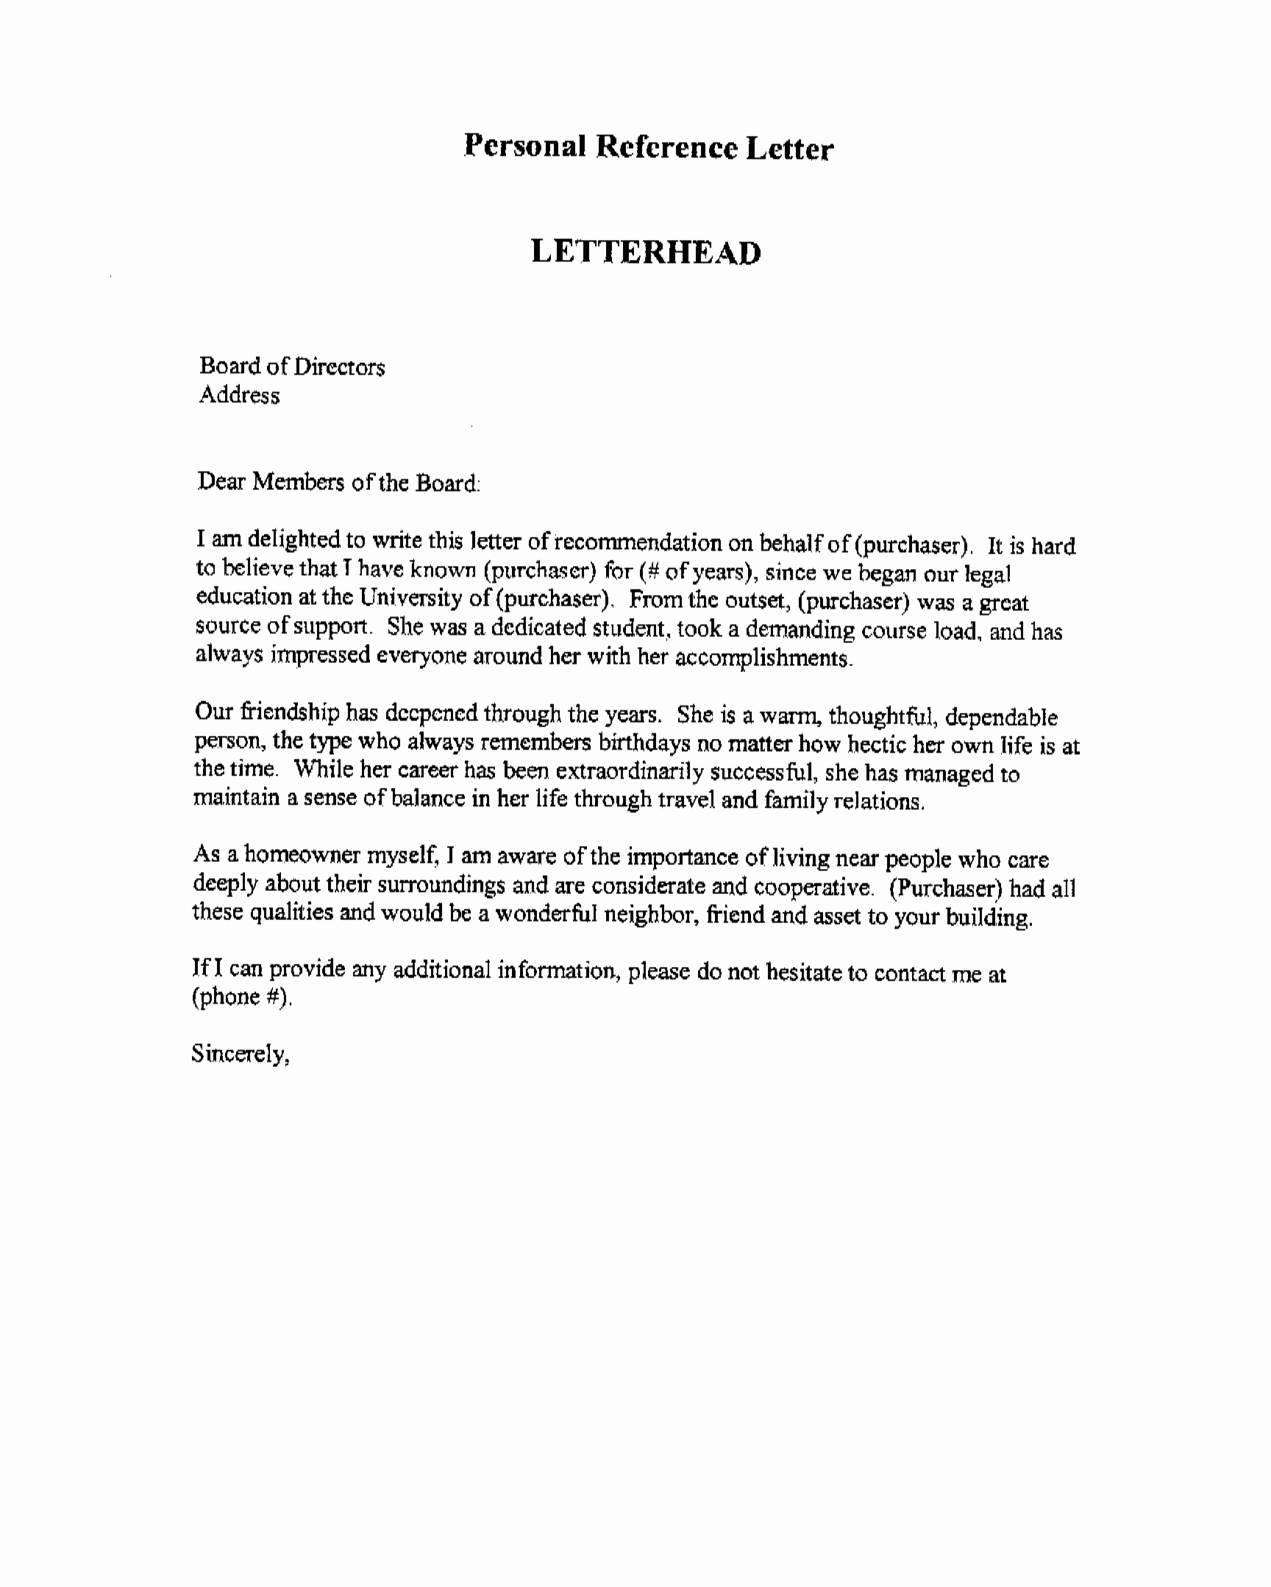 Letter Of Recommendation for Professorship Unique Professional Re Mendation Letter This is An Example Of